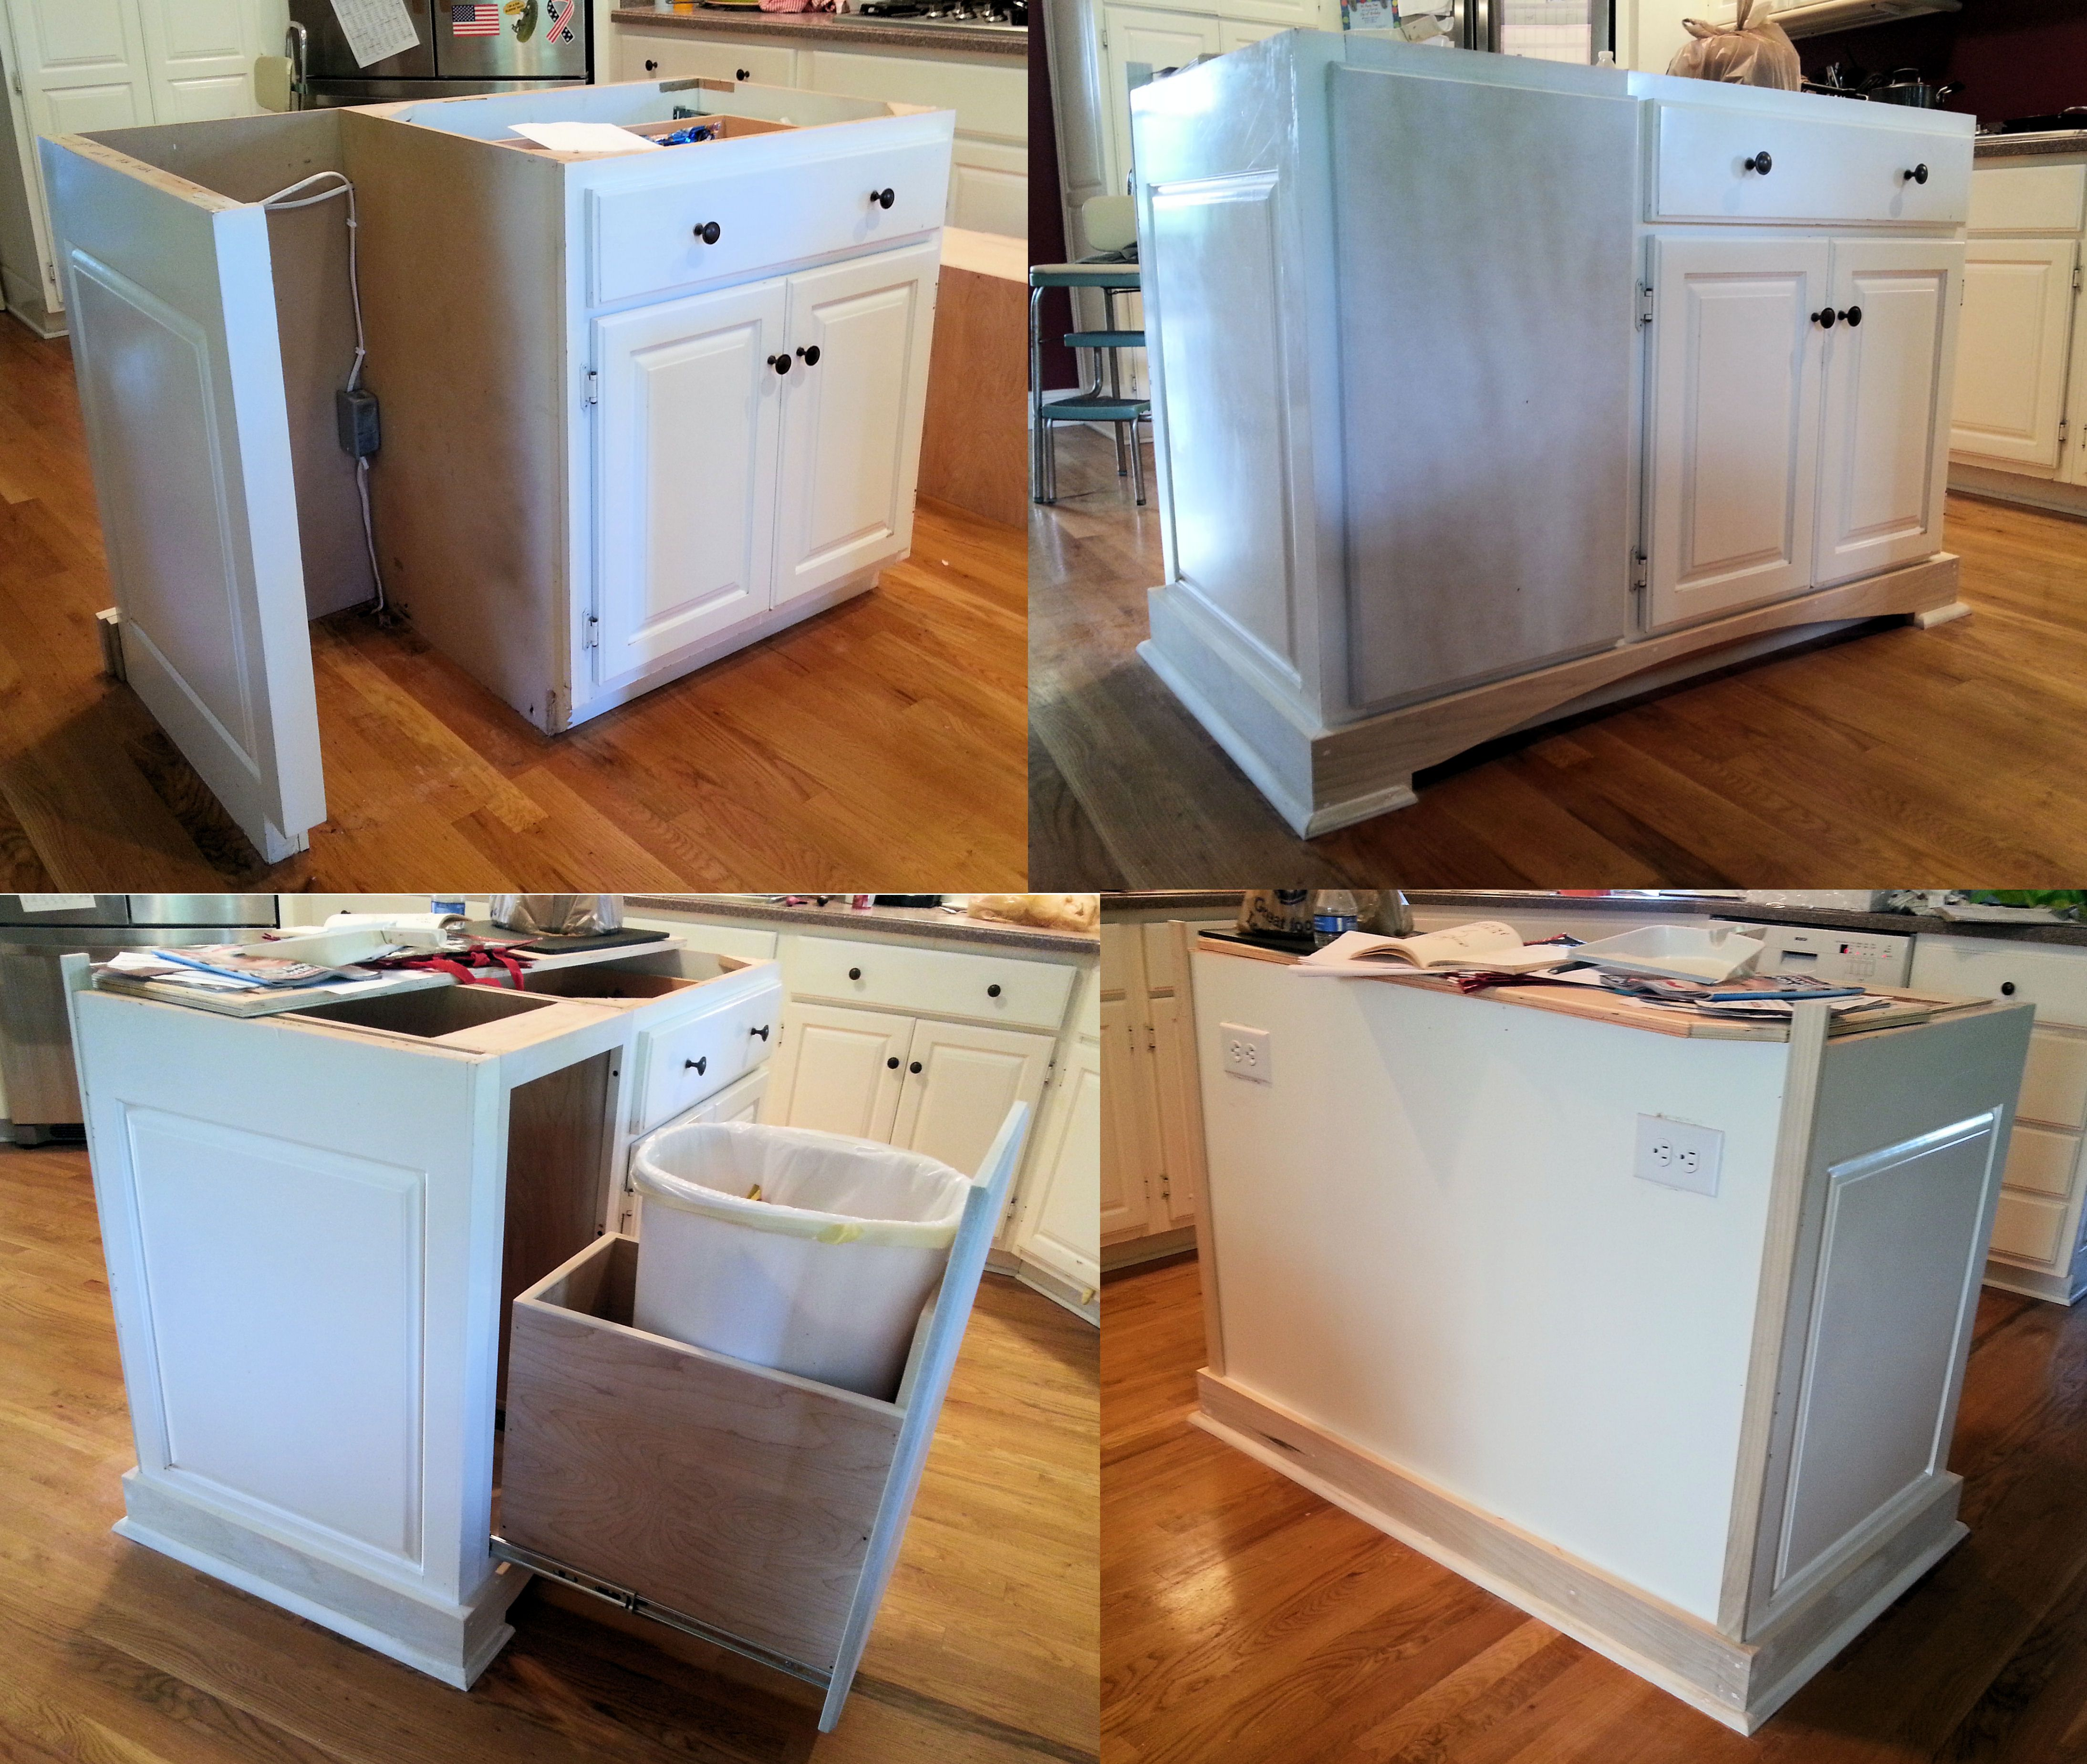 Removed Existing Trash Compactor And Replaced With Rollout Cabinet Furniture Base Waiting For Countertop To Finish Island